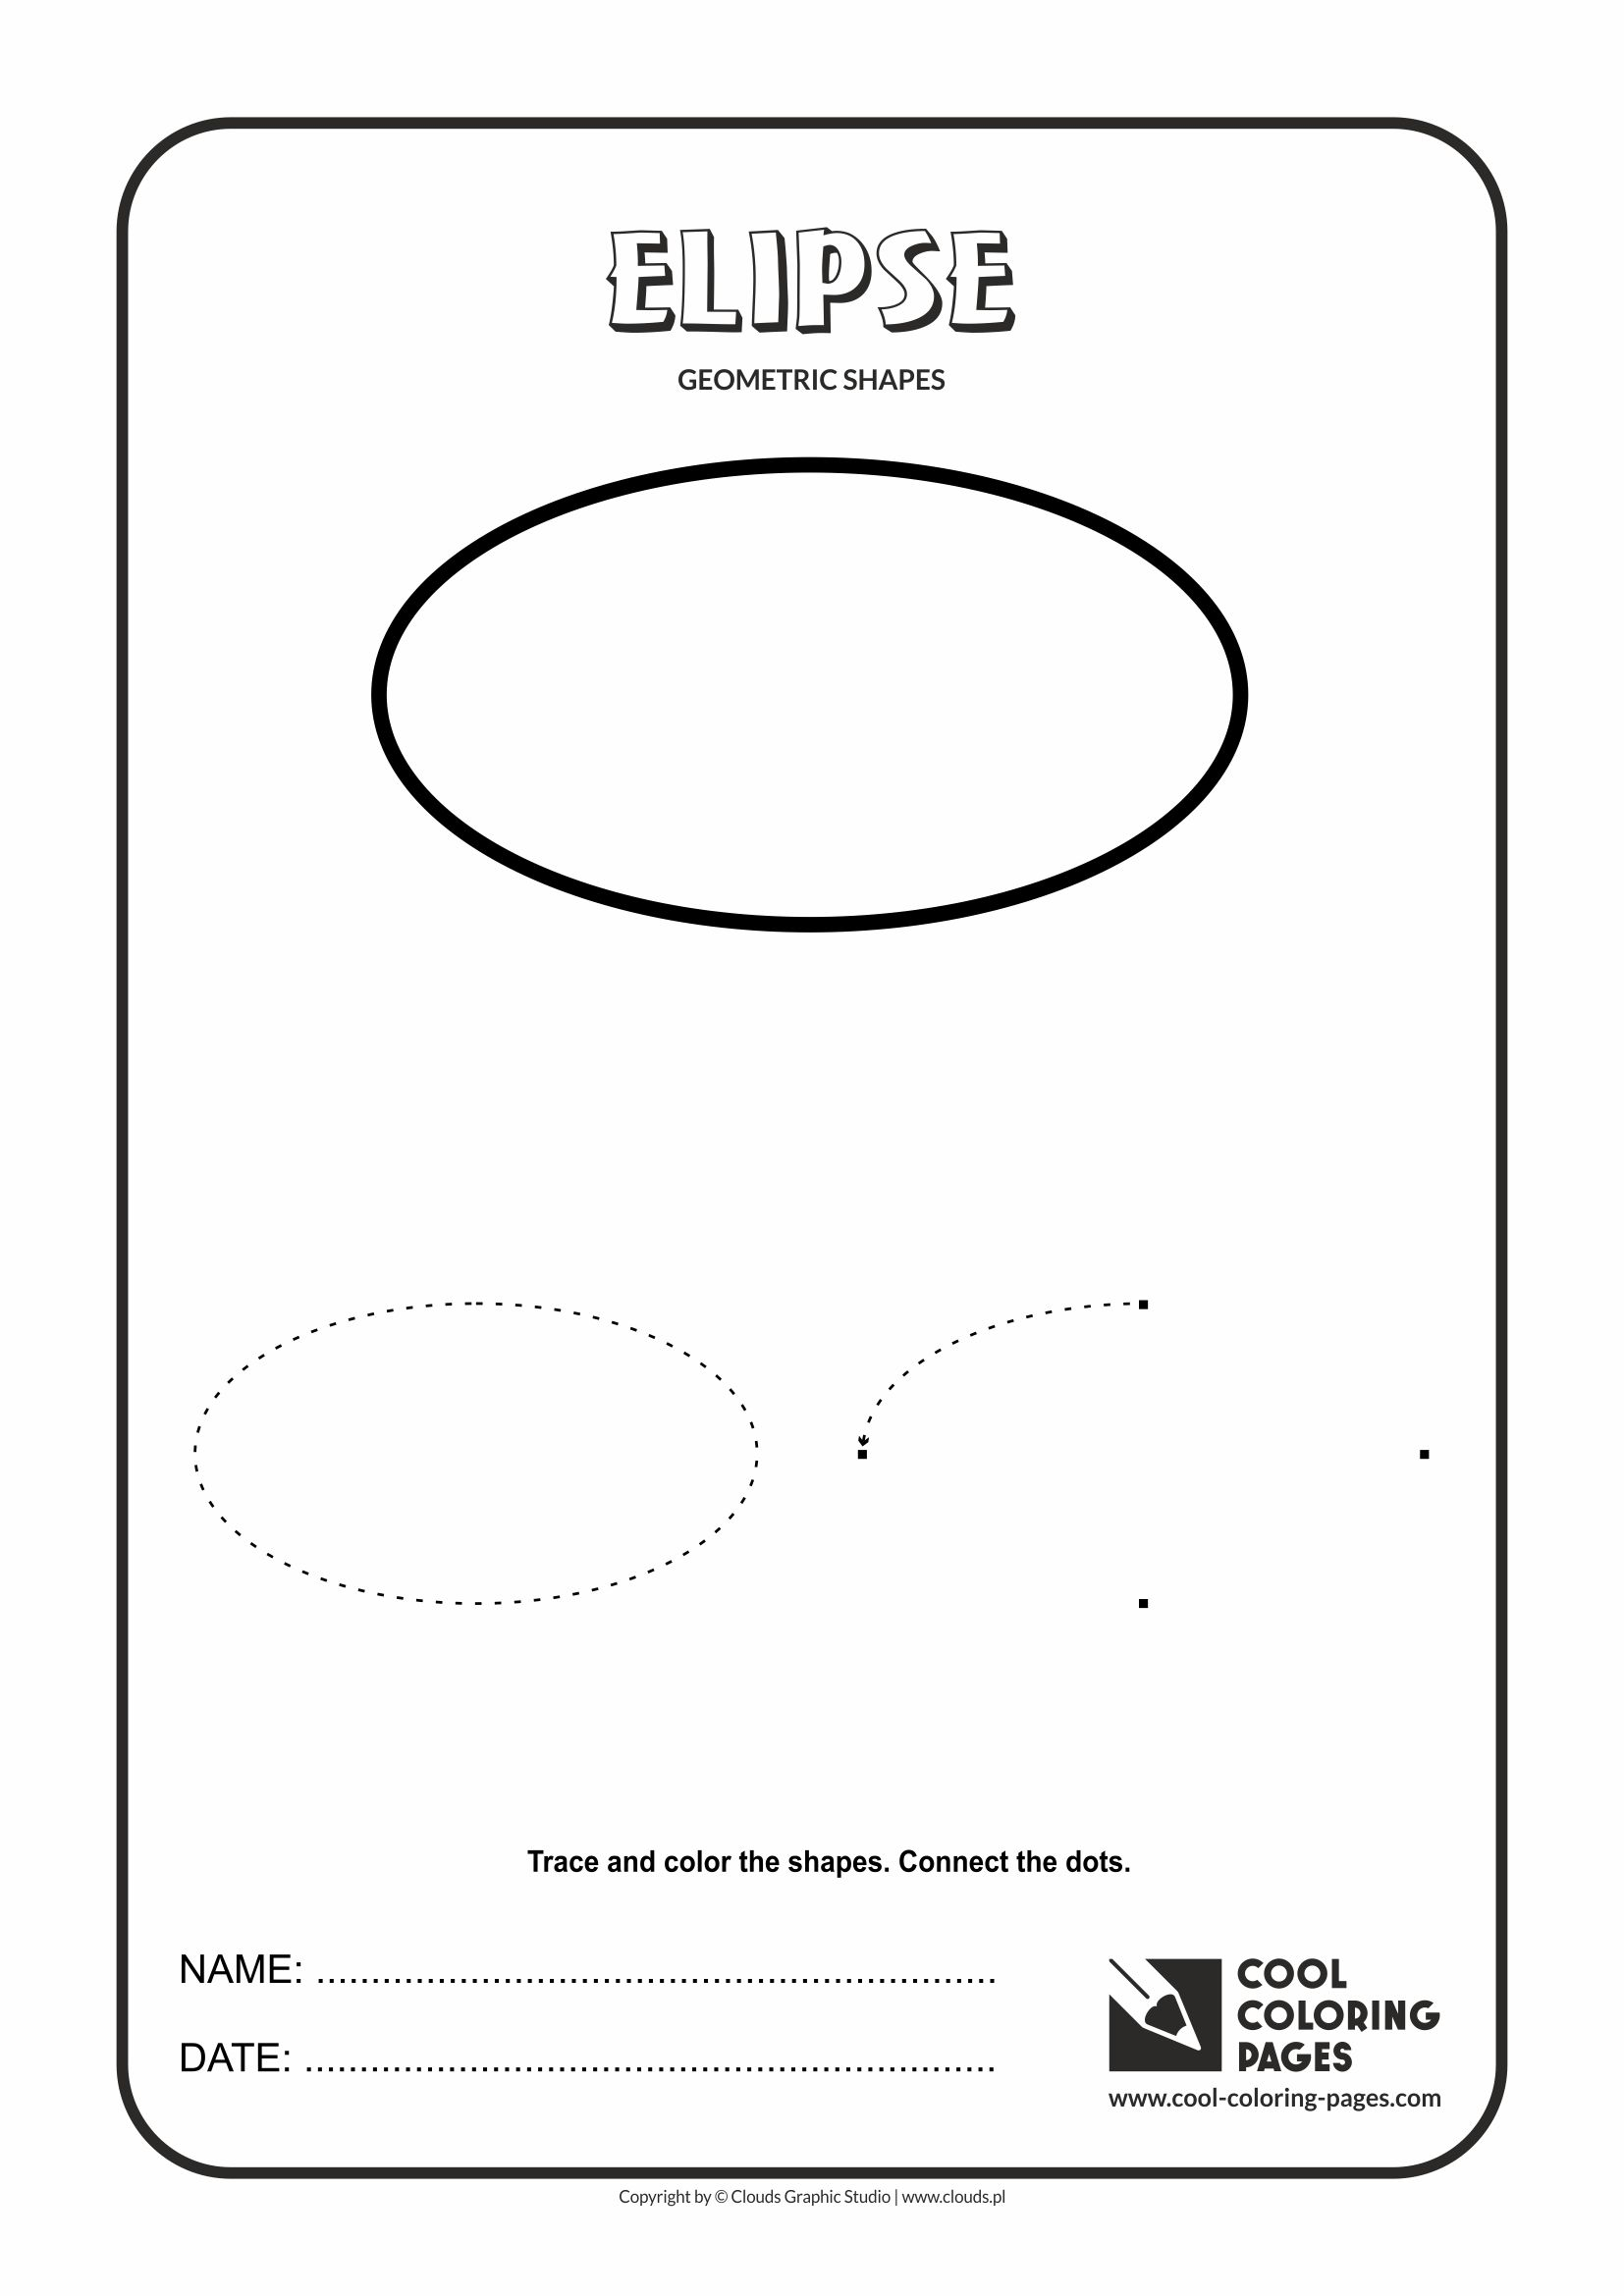 Cool Coloring Pages - Geometric shapes / Elipse